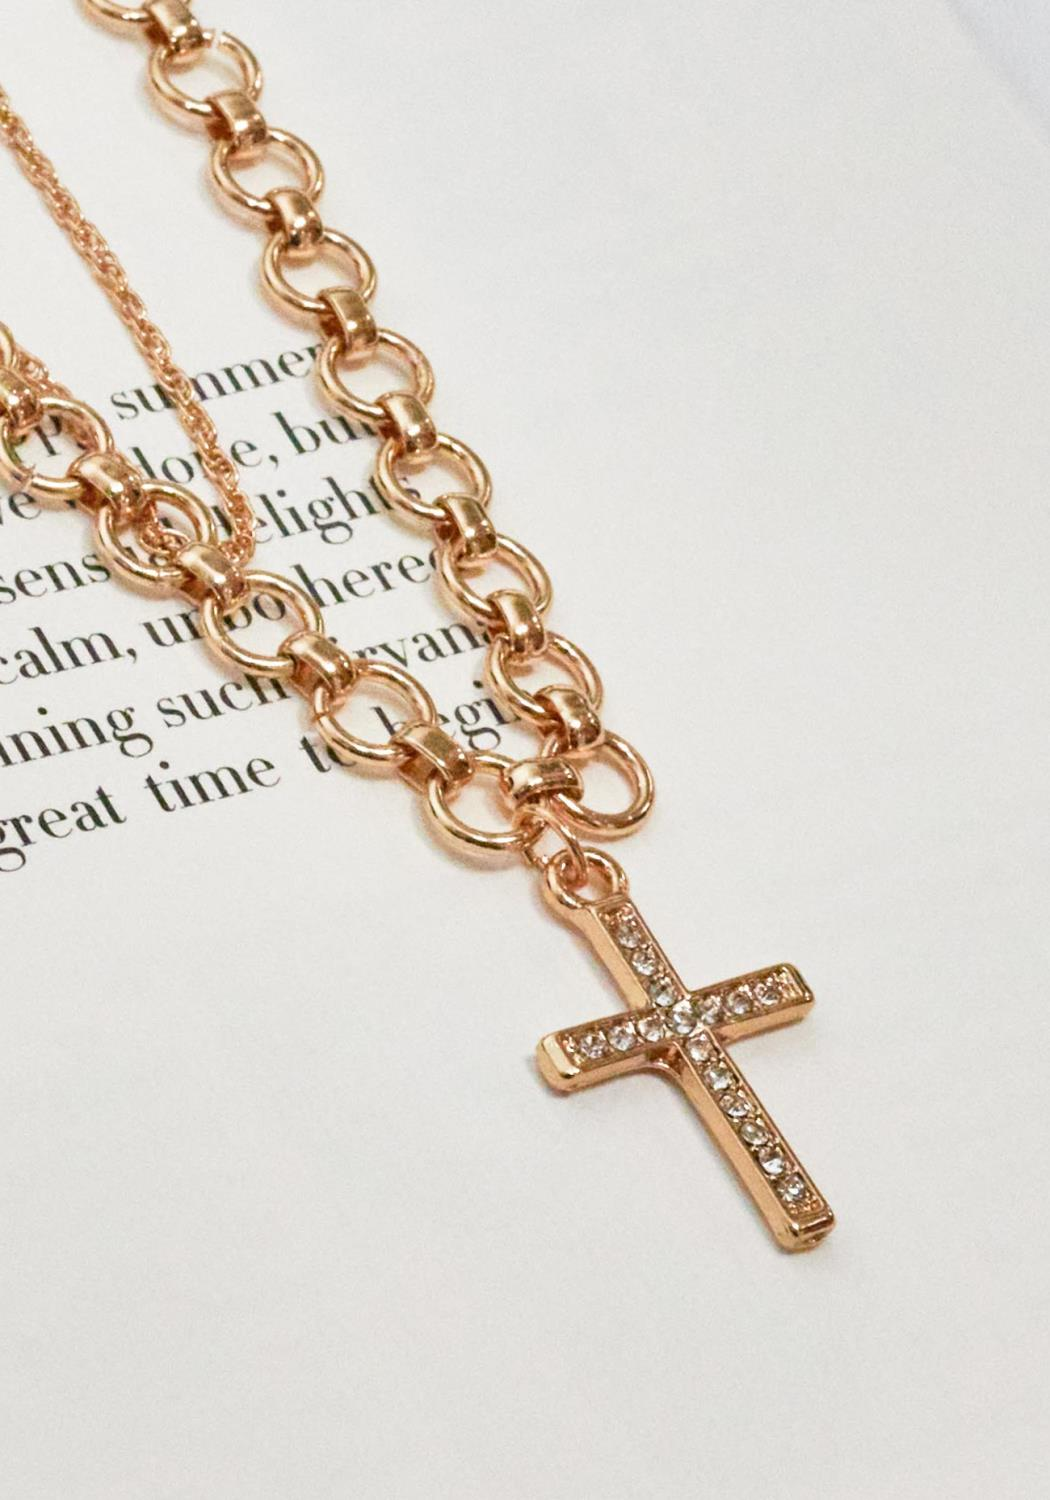 Double Gold Chain Necklace with Cross Pendant